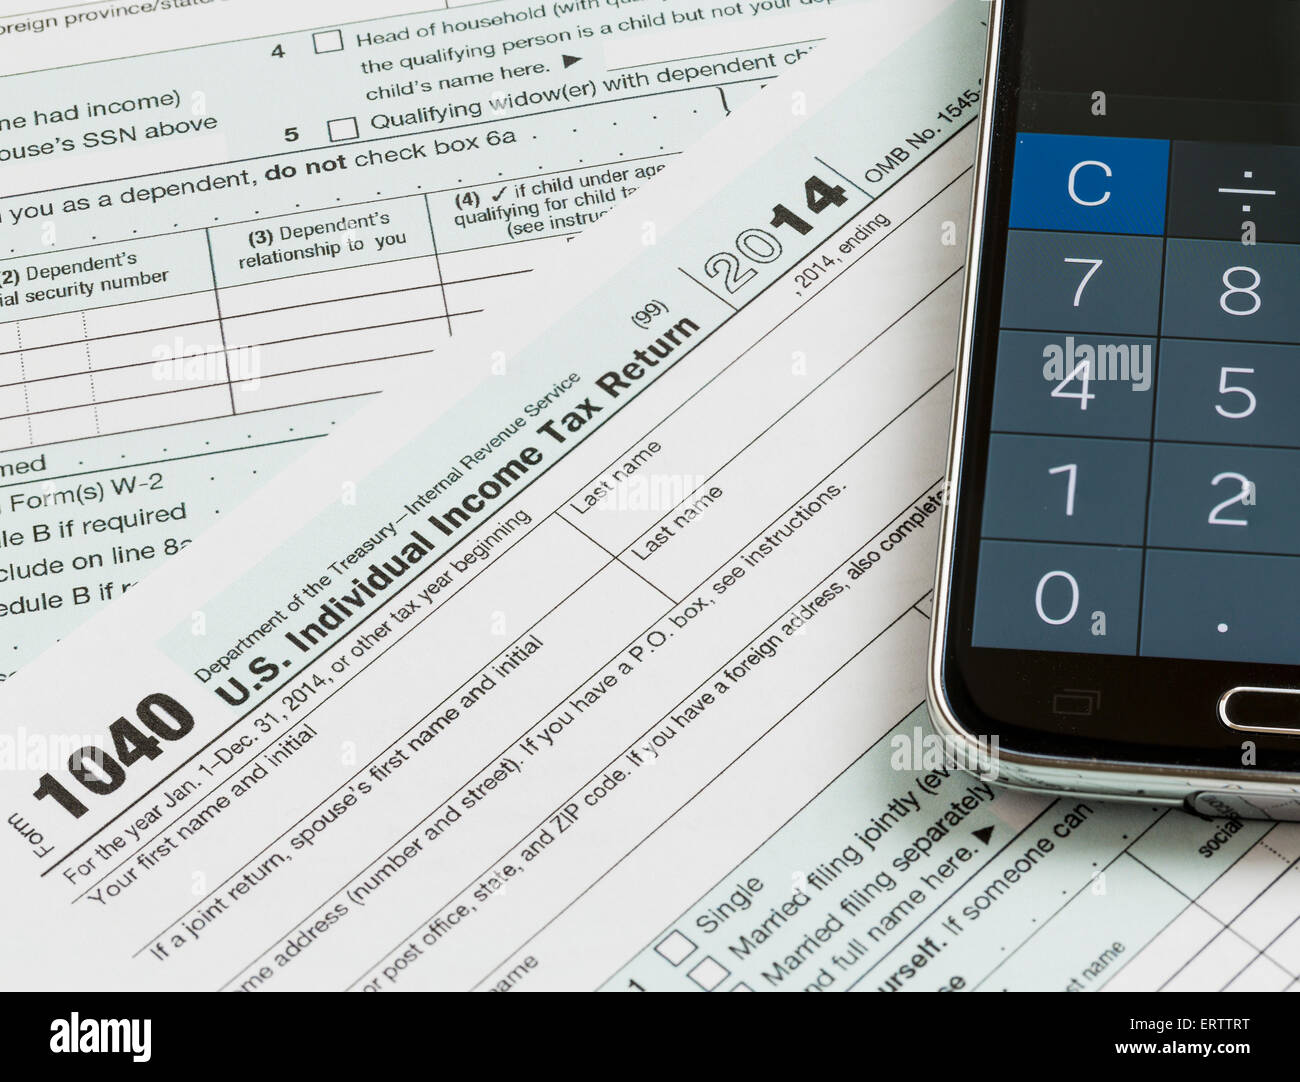 USA tax form 1040 with calculator app on phone - Stock Image